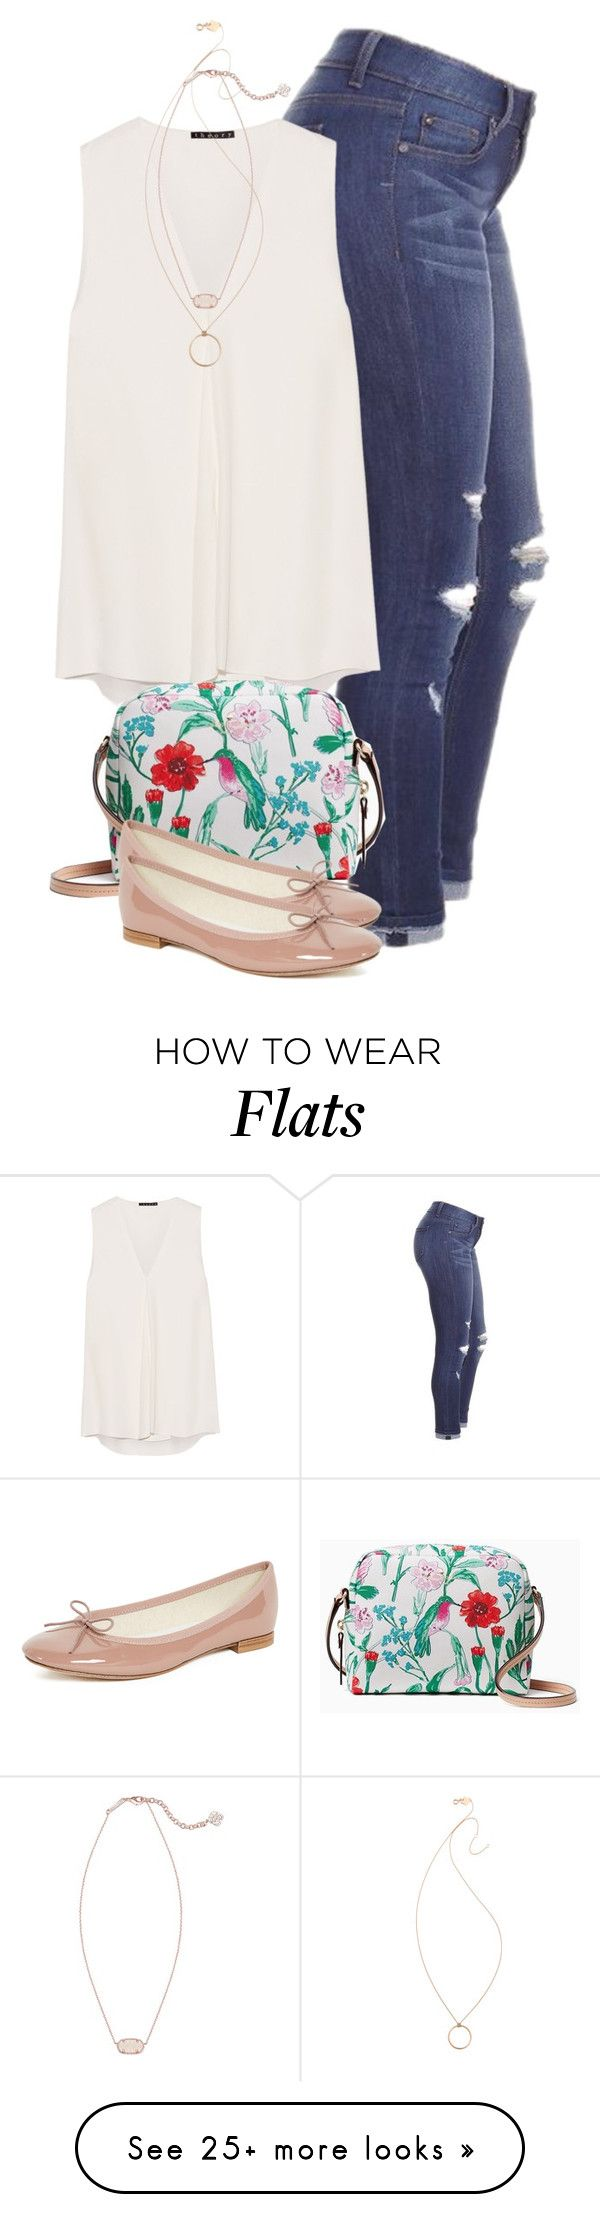 """""""Untitled #1438"""" by florabias on Polyvore featuring Theory, Kate Spade, Ginette NY, Kendra Scott and Repetto"""